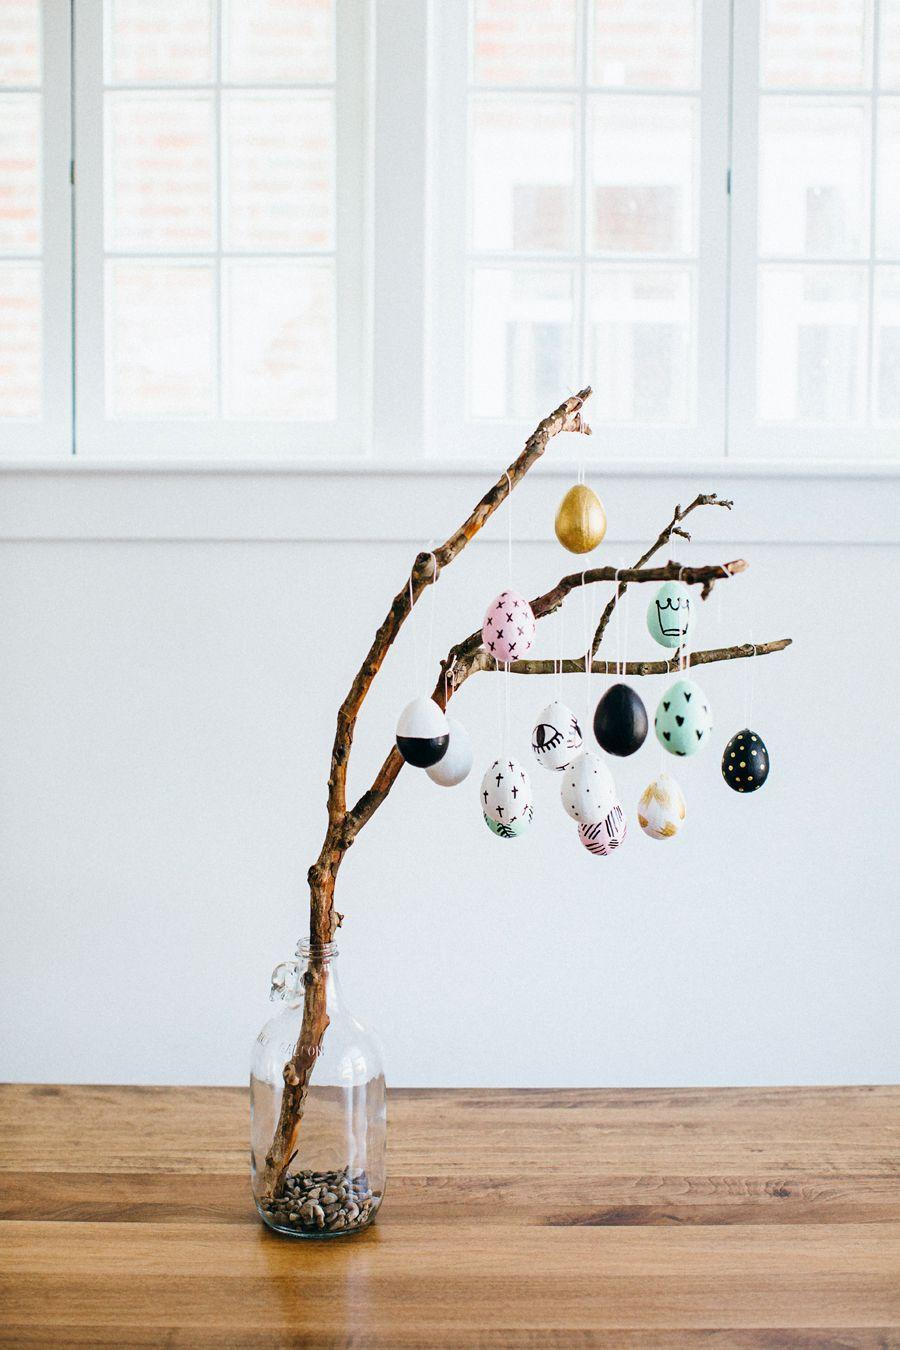 """<p> Hand-drawn motifs and a cohesive, on-trend color palette go a long way in crafting an Instagram-worthy tree. </p><p><strong>Get the tutorial at <a href=""""https://walkinlove.com/blogs/walk-in-love/easter-egg-tree"""" rel=""""nofollow noopener"""" target=""""_blank"""" data-ylk=""""slk:Walk in Love"""" class=""""link rapid-noclick-resp"""">Walk in Love</a>.</strong></p><p><strong><a class=""""link rapid-noclick-resp"""" href=""""https://www.amazon.com/Sharpie-Oil-Based-Paint-Marker-Medium/dp/B00WL2NM0K?tag=syn-yahoo-20&ascsubtag=%5Bartid%7C10050.g.26498744%5Bsrc%7Cyahoo-us"""" rel=""""nofollow noopener"""" target=""""_blank"""" data-ylk=""""slk:SHOP PAINT MARKERS"""">SHOP PAINT MARKERS</a></strong><strong><br></strong></p>"""